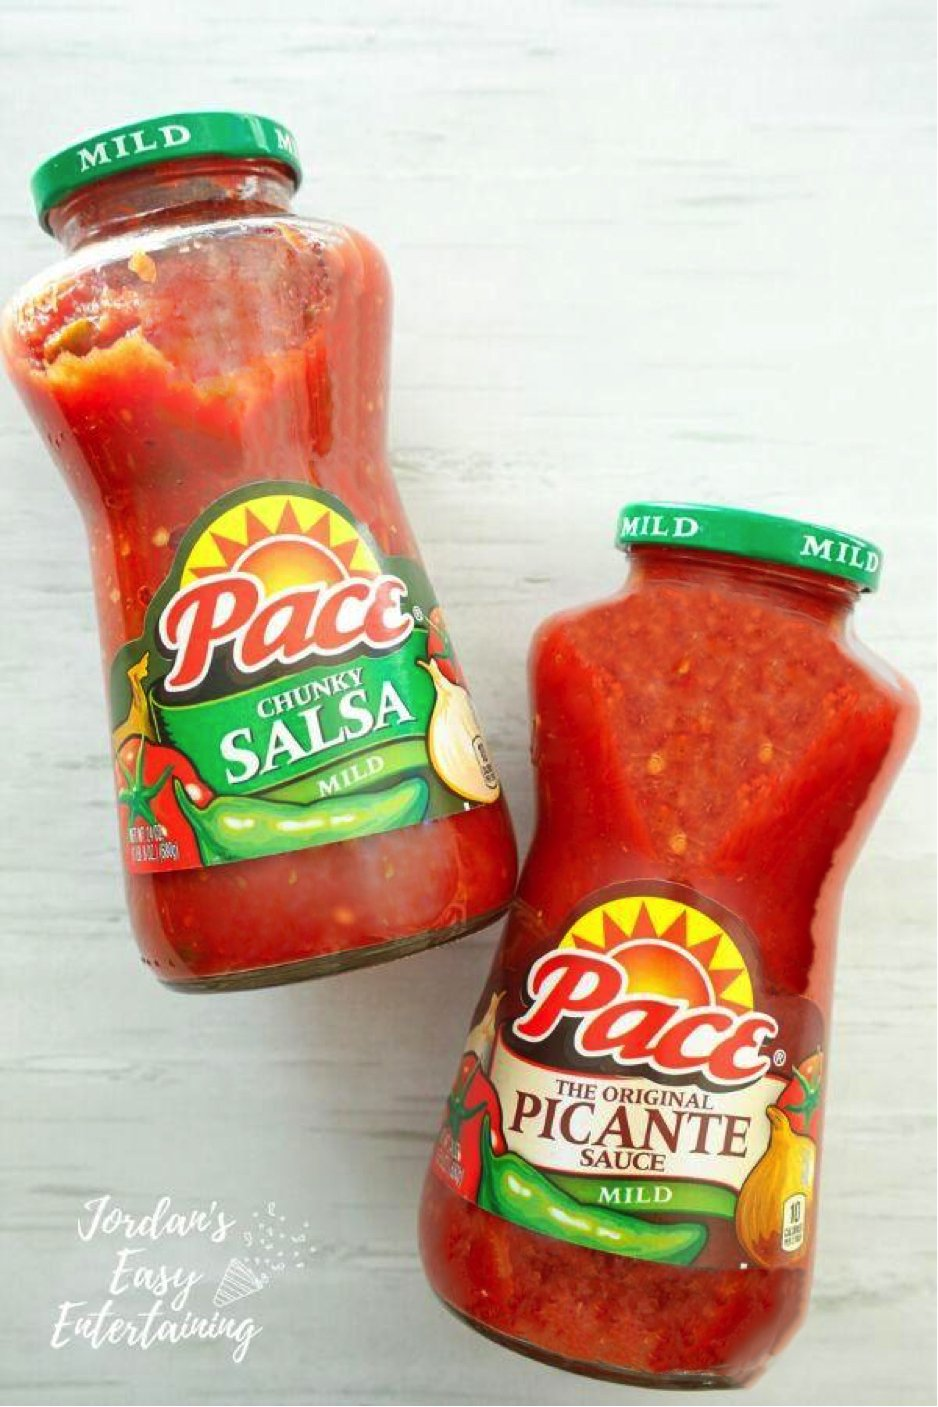 a jar of Pace Chunky Salsa and a jar of Pace Picante Sauce